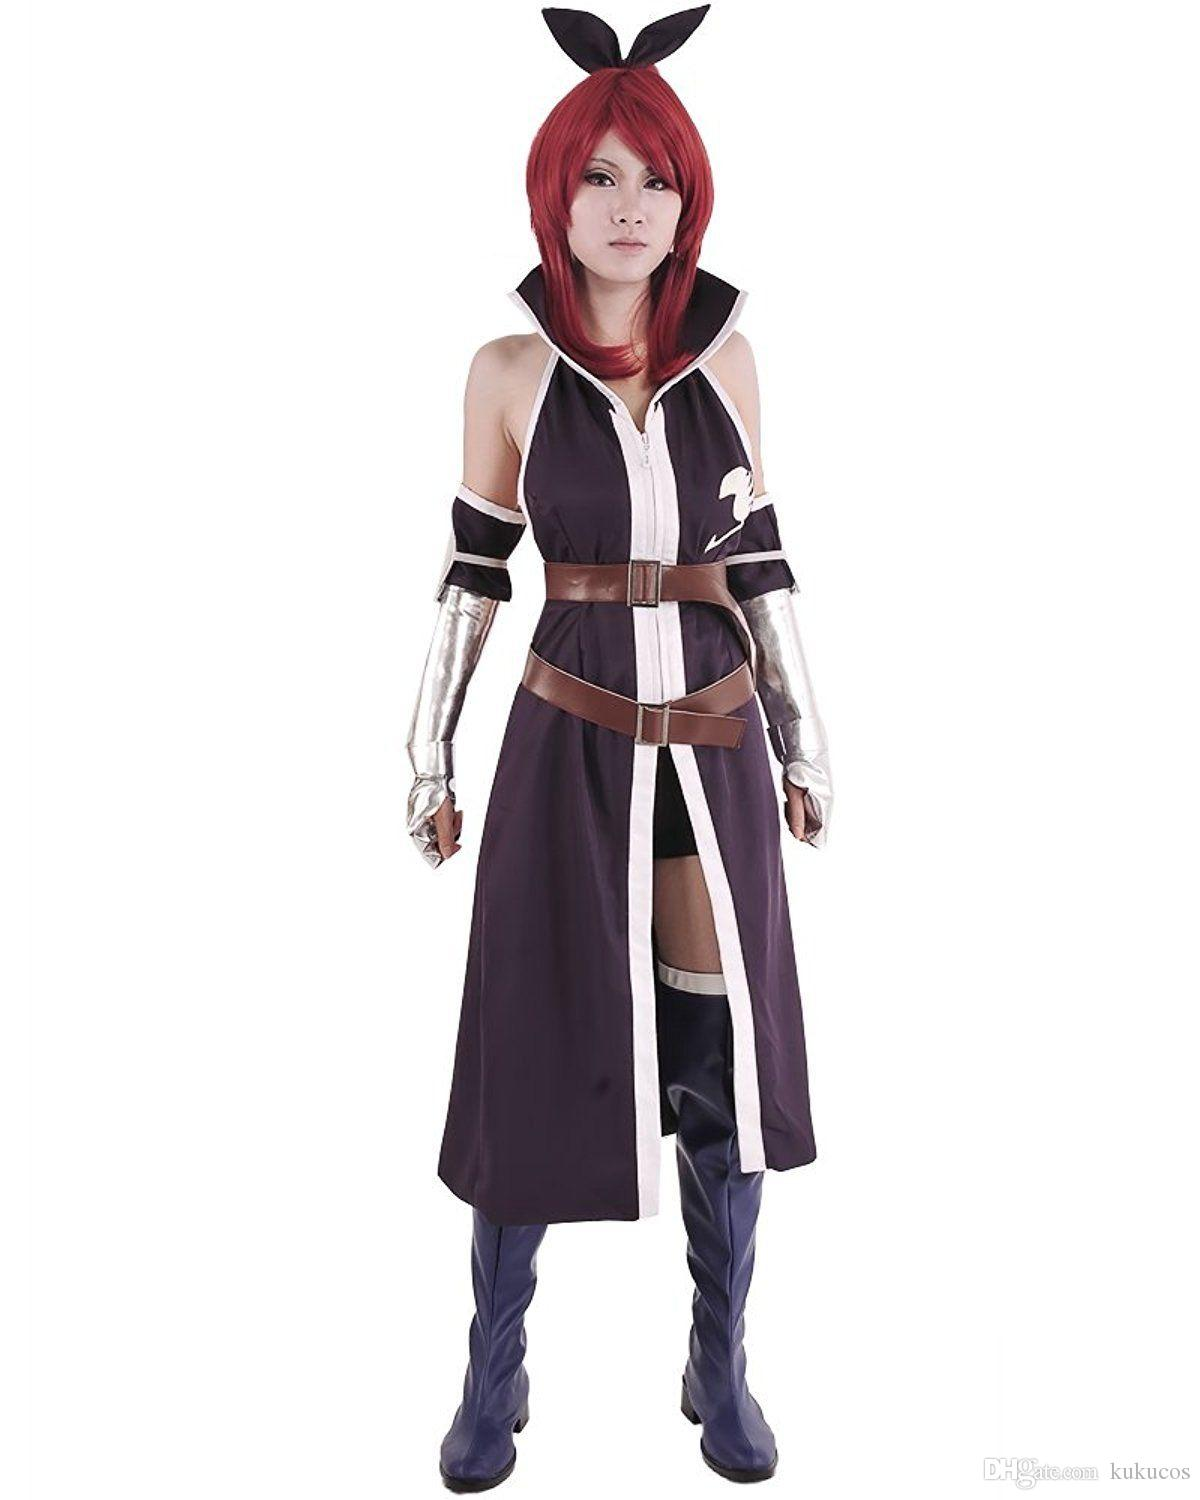 12fc54e20 Kukucos Anime Super Cool Fairy Tail Cloak Erza Scarlet Cosplay Whole Costume  Women Size Halloween Suit Cute Halloween Costumes For Groups Top Group ...